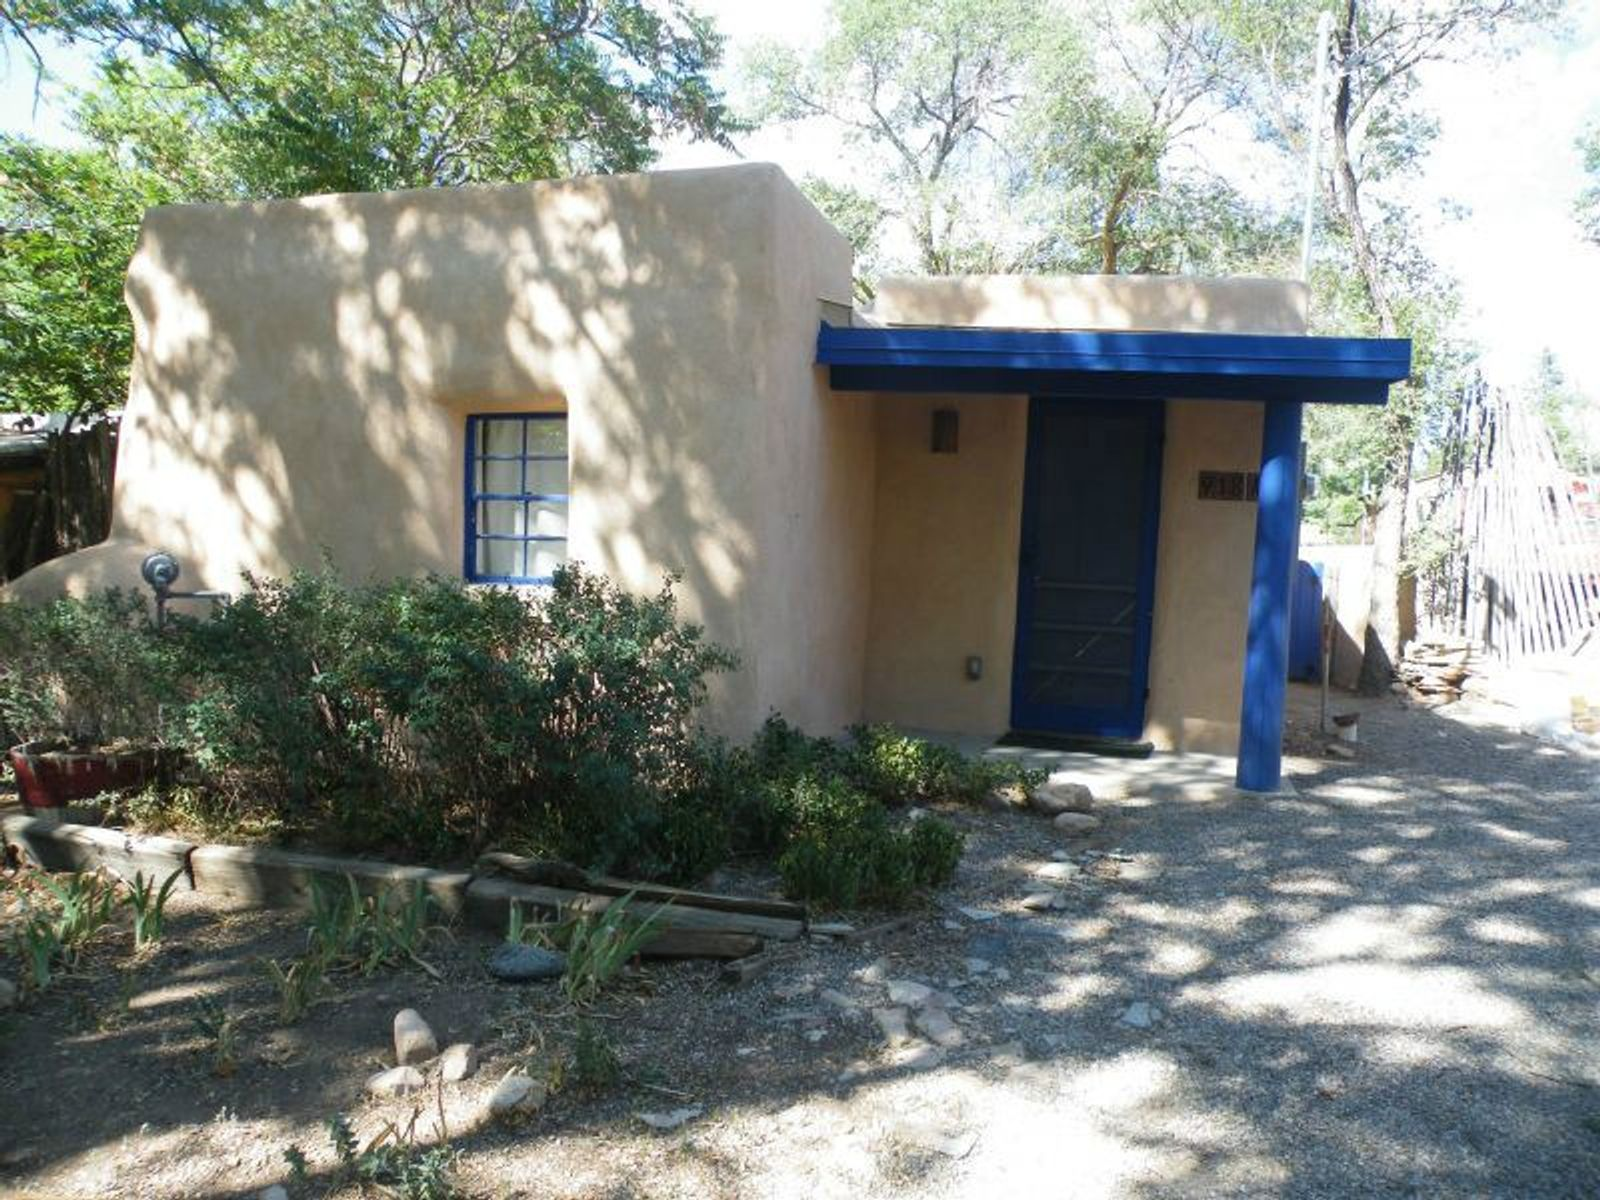 918-A Acequia Madre, Santa Fe NM Single Family Home - Santa Fe Real Estate